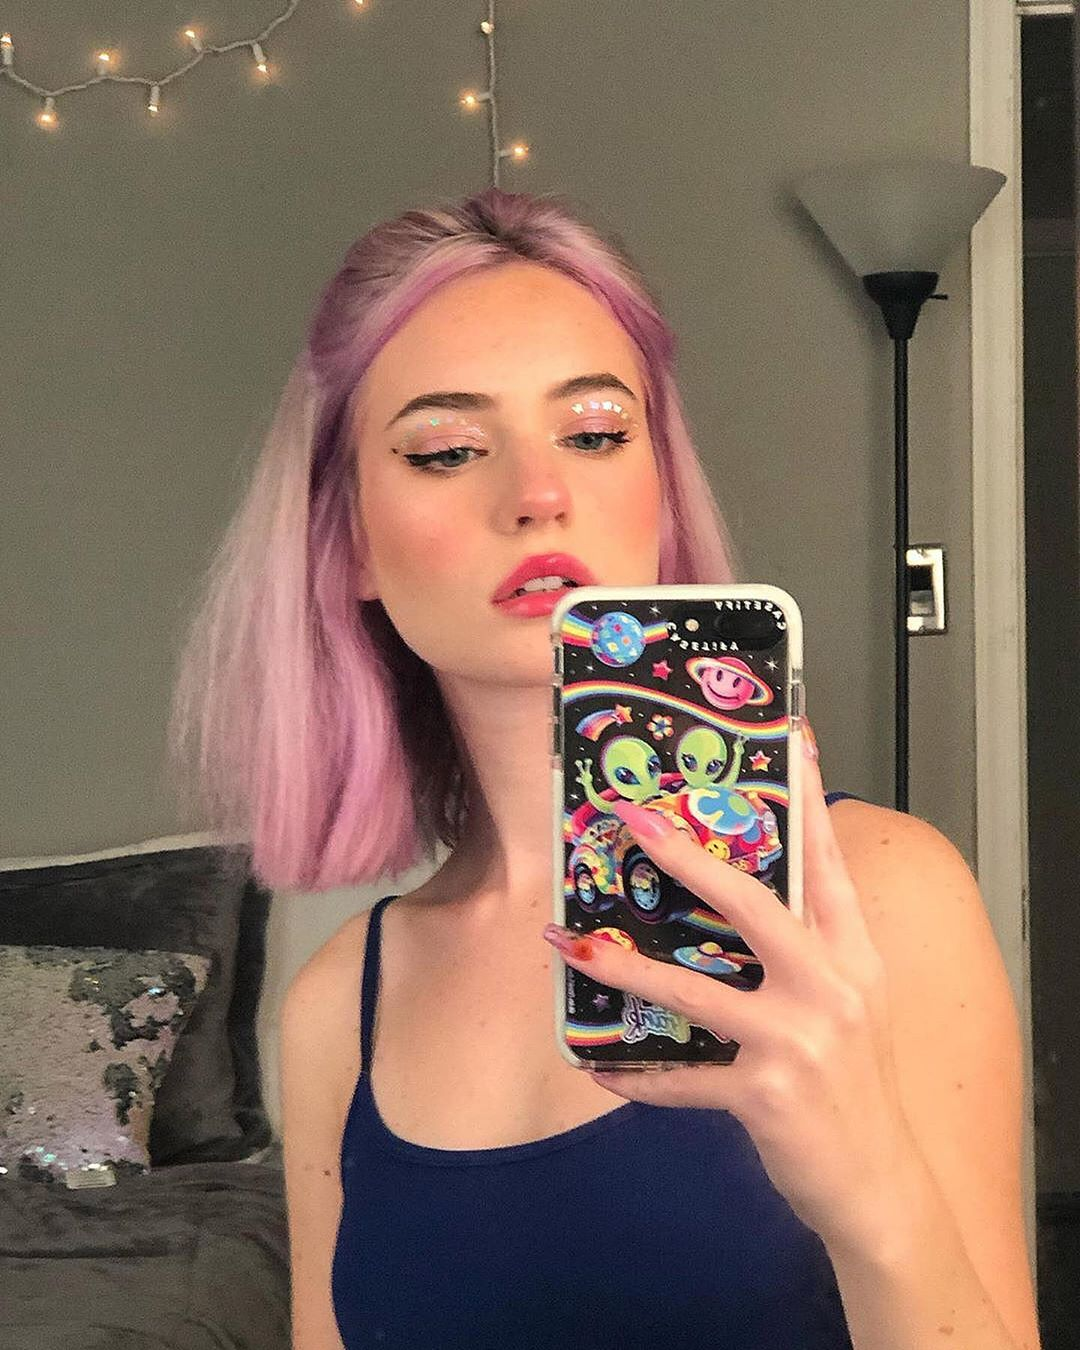 Casetify On Twitter Lisa Frank X Casetify Is Sold Out Our Latest Collection Was A Dream A Colorful Rainbow Cheetah Tie Dye Dream Make Sure To Keep Sharing The Love